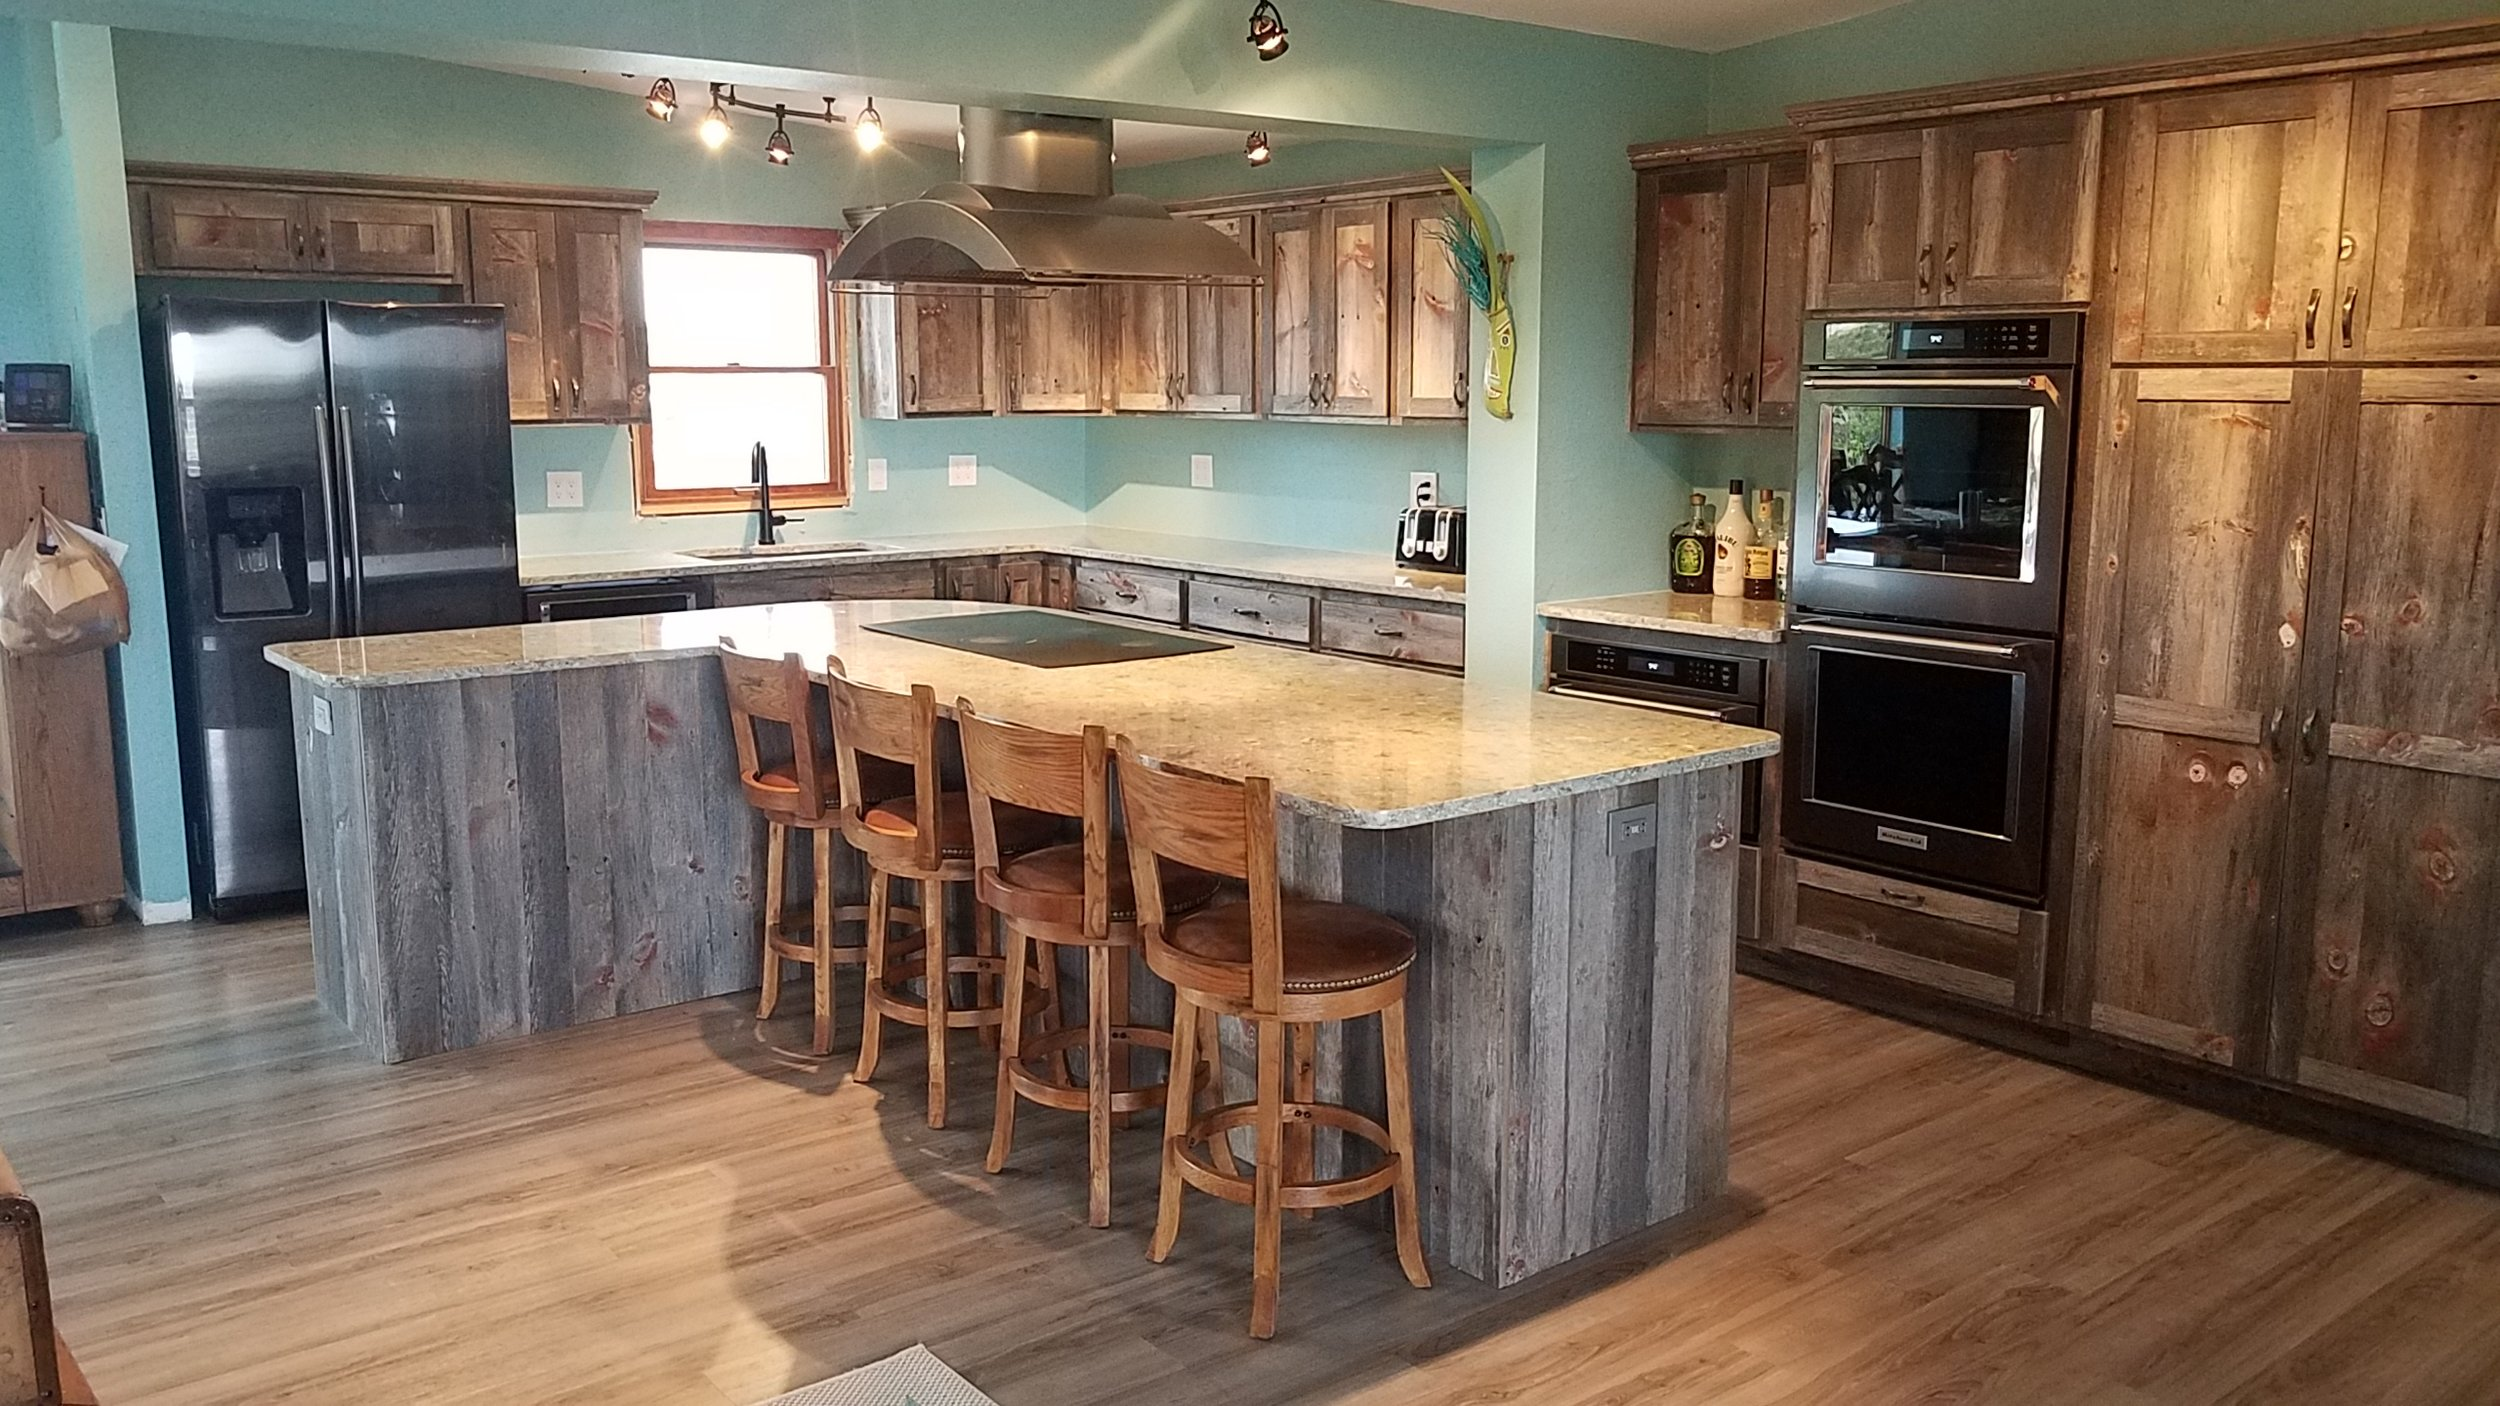 Weathered Gray Reclaimed Barnwood Kitchen designed and built by Vienna Woodworks LLC. The comapny ships full kitchens nationwide and to Canada.